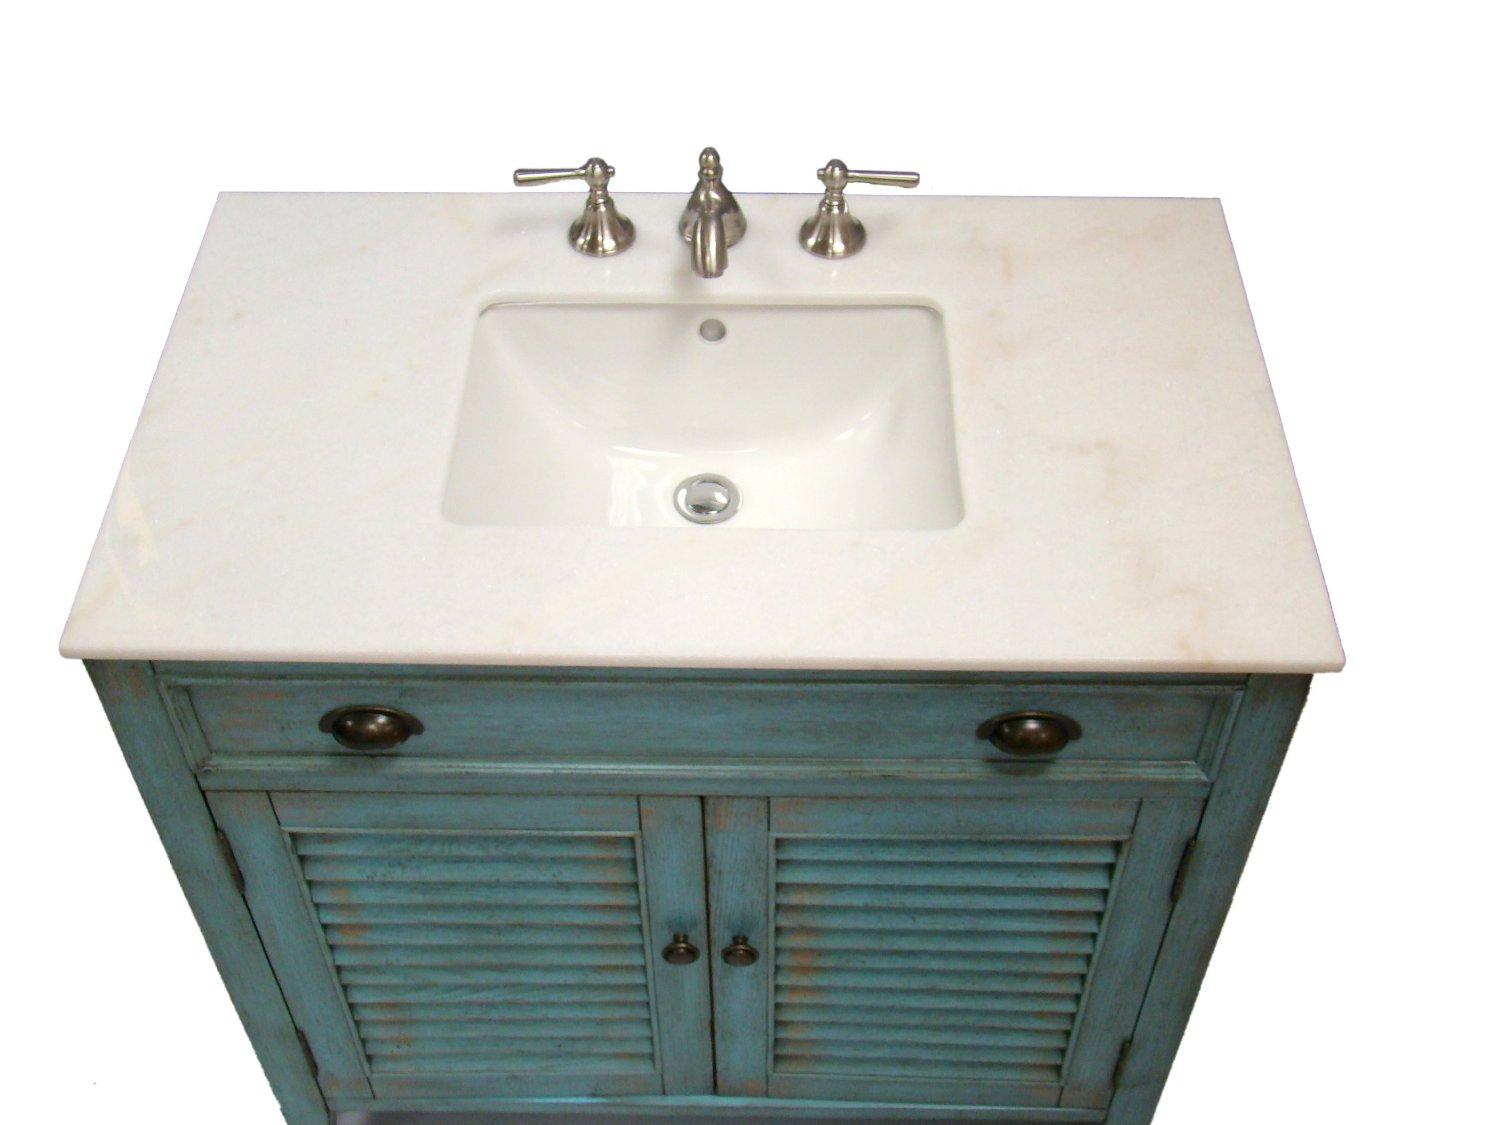 Bathroom Vanities Austin adelina 36 inch cottage white sink bathroom vanity, white marble